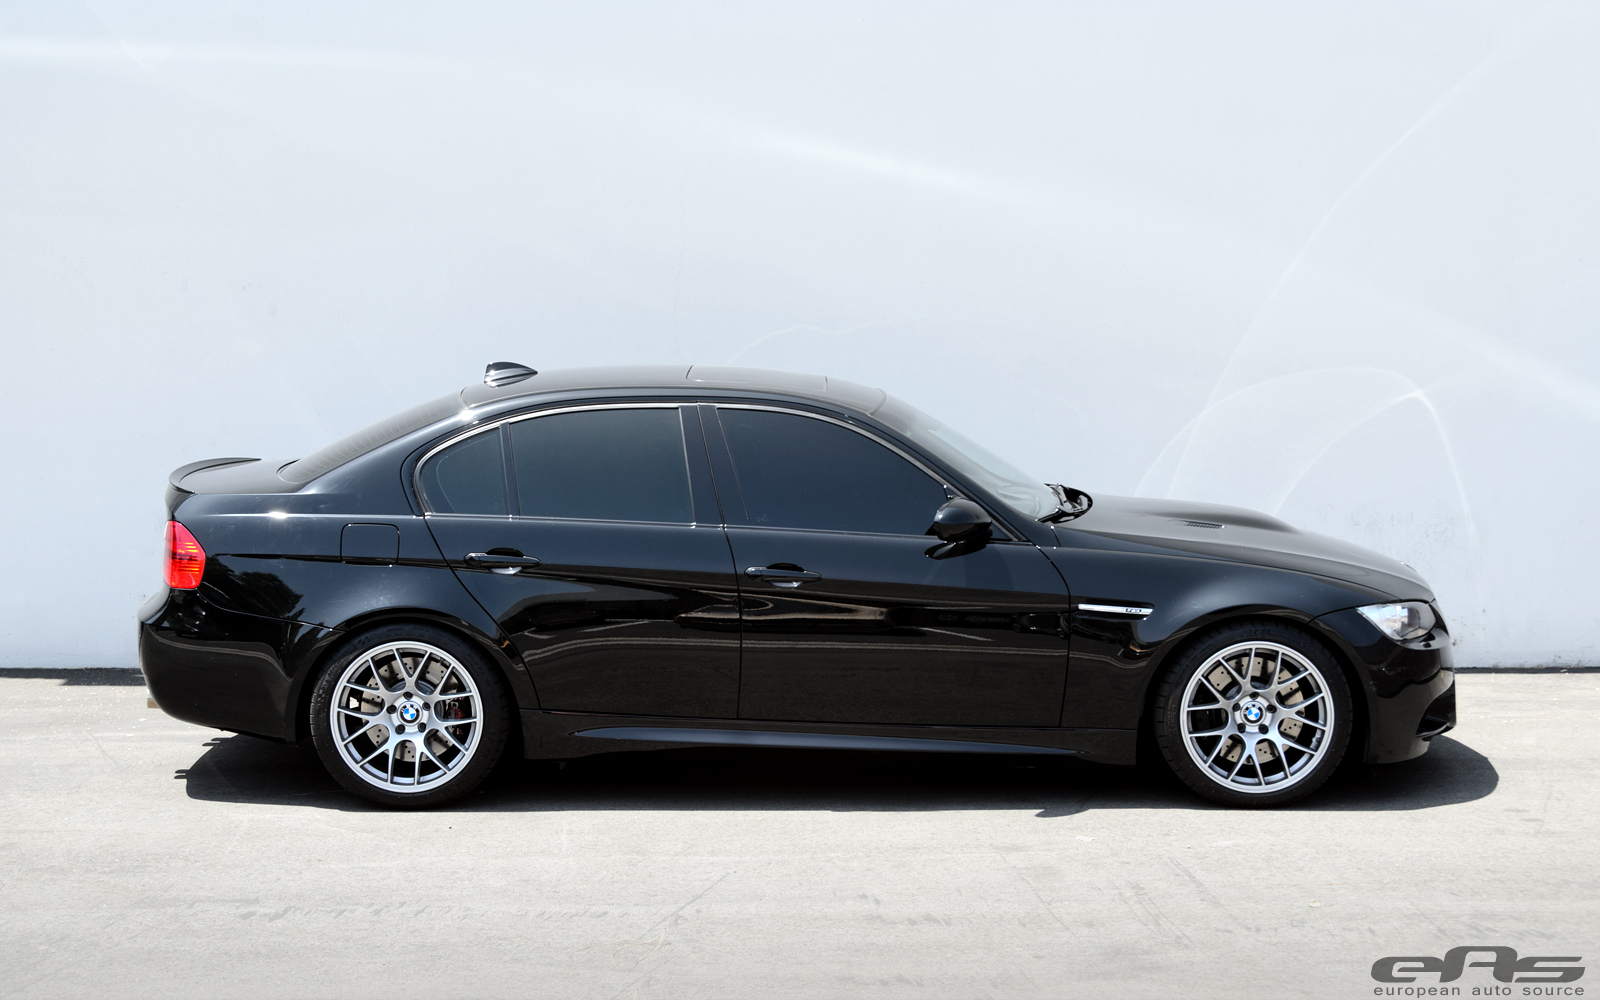 Eas Fits Jet Black Bmw E90 M3 With Apex Wheels Autoevolution